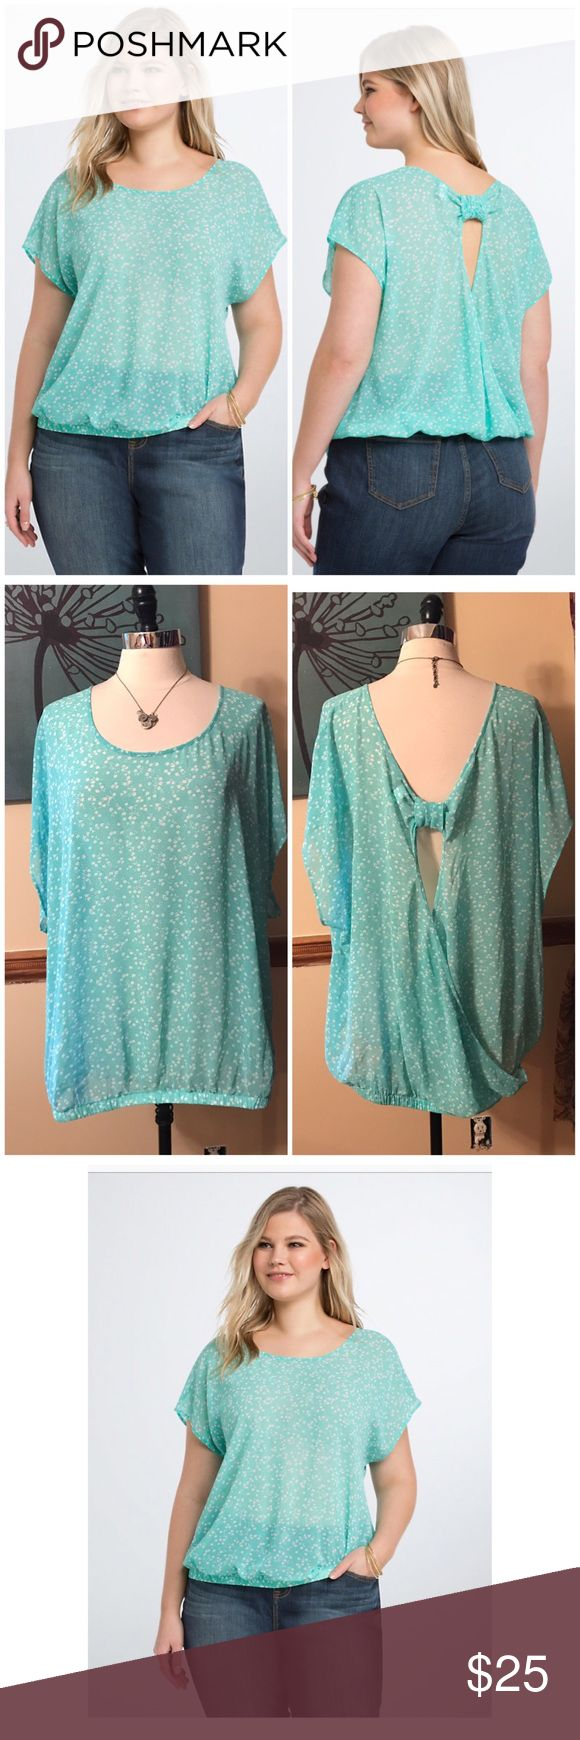 Torrid Floral Chiffon Bow Back Top Size 4. Want to impress your current mood? Sport this sheer mint green chiffon top; its paired with a playful floral print. The open back is held in place by an adorable now, the cut-out revealing a sliver of skin. A banded bottom lends dramatic definition. Polyester. EUC $38.50 torrid Tops Blouses